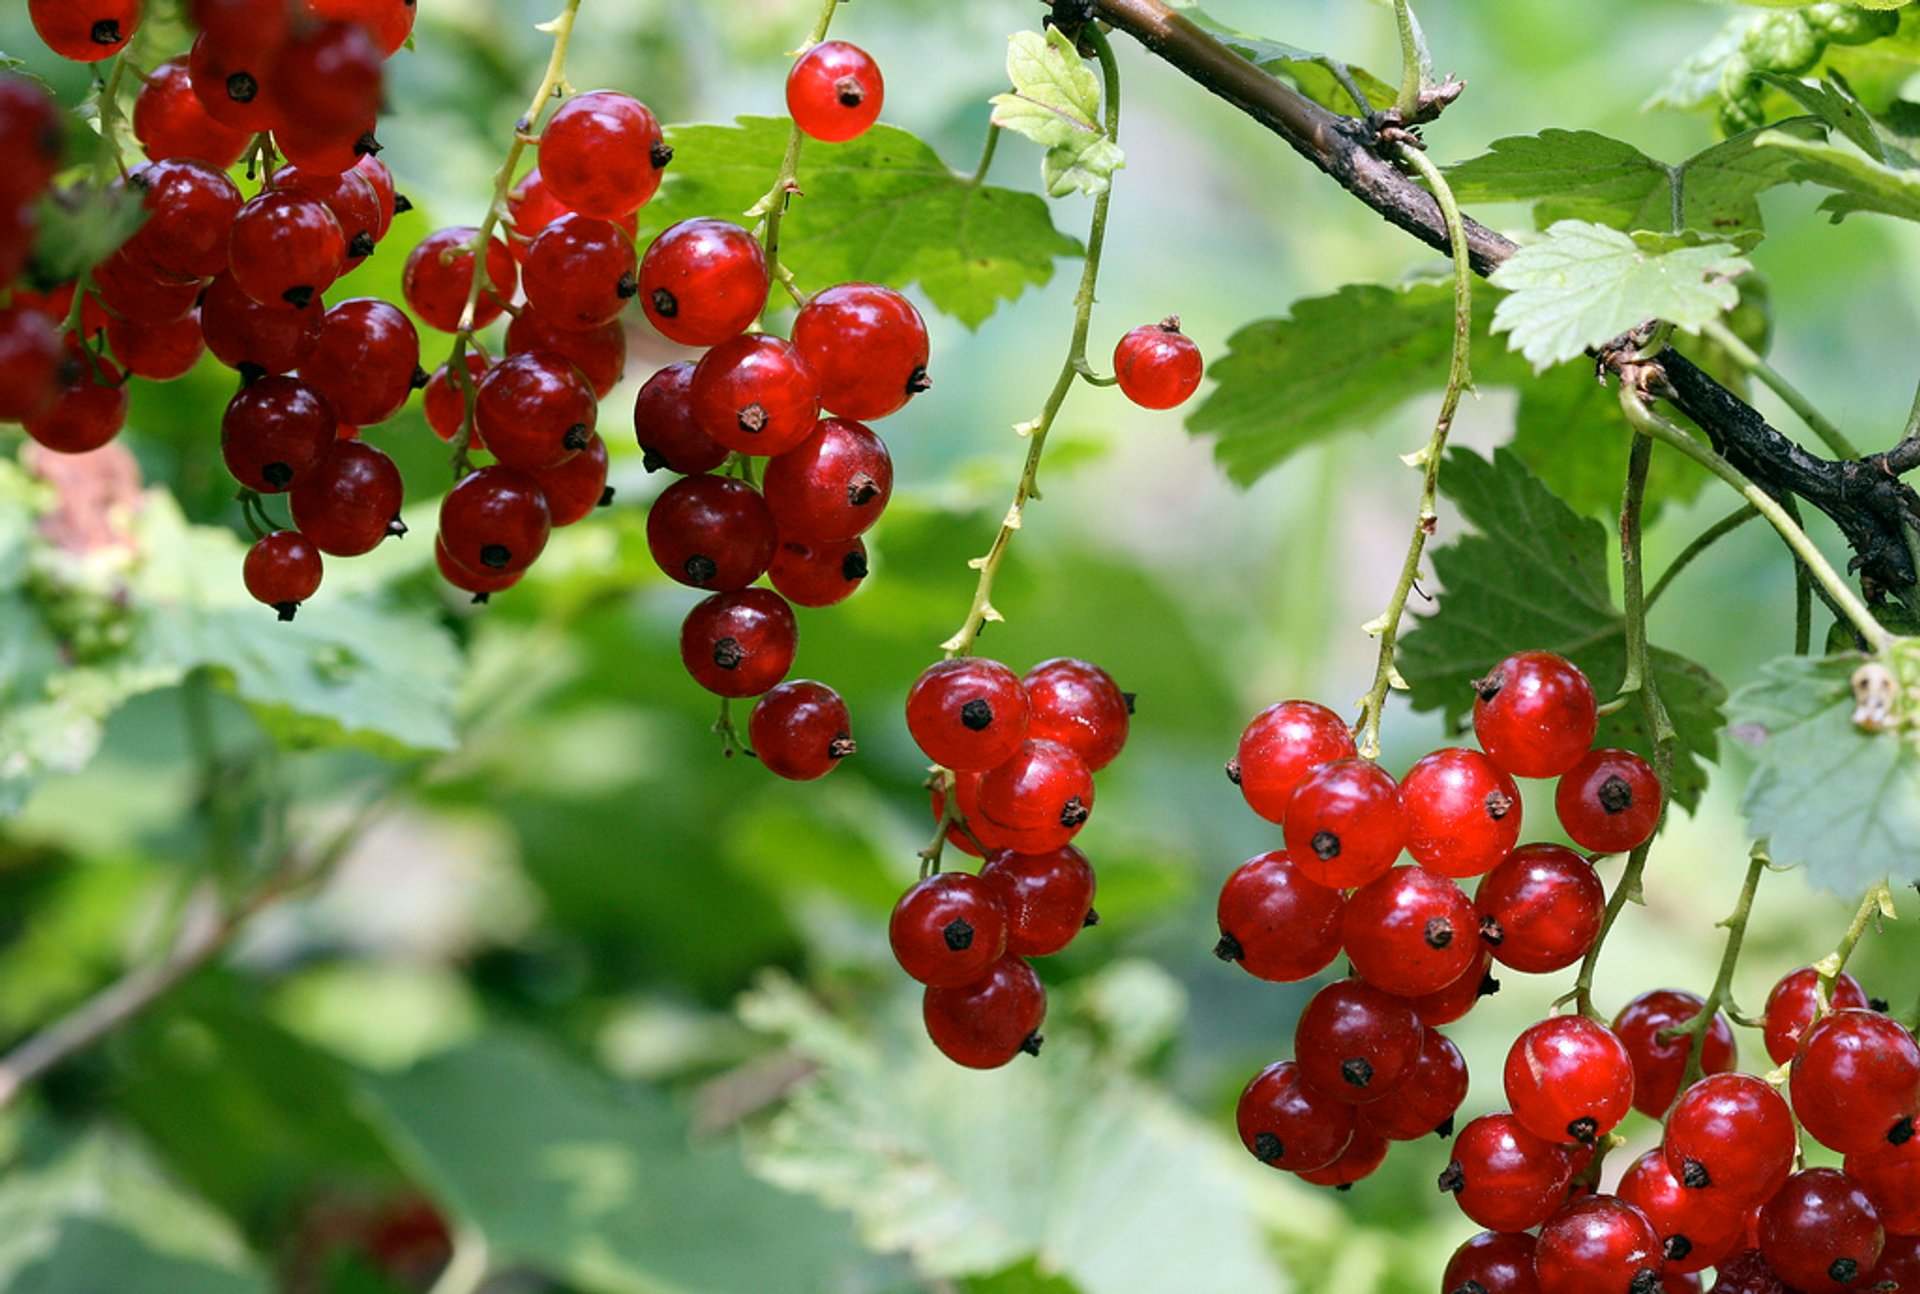 Red and Black Currants or Rips and Solbær in Norway - Best Season